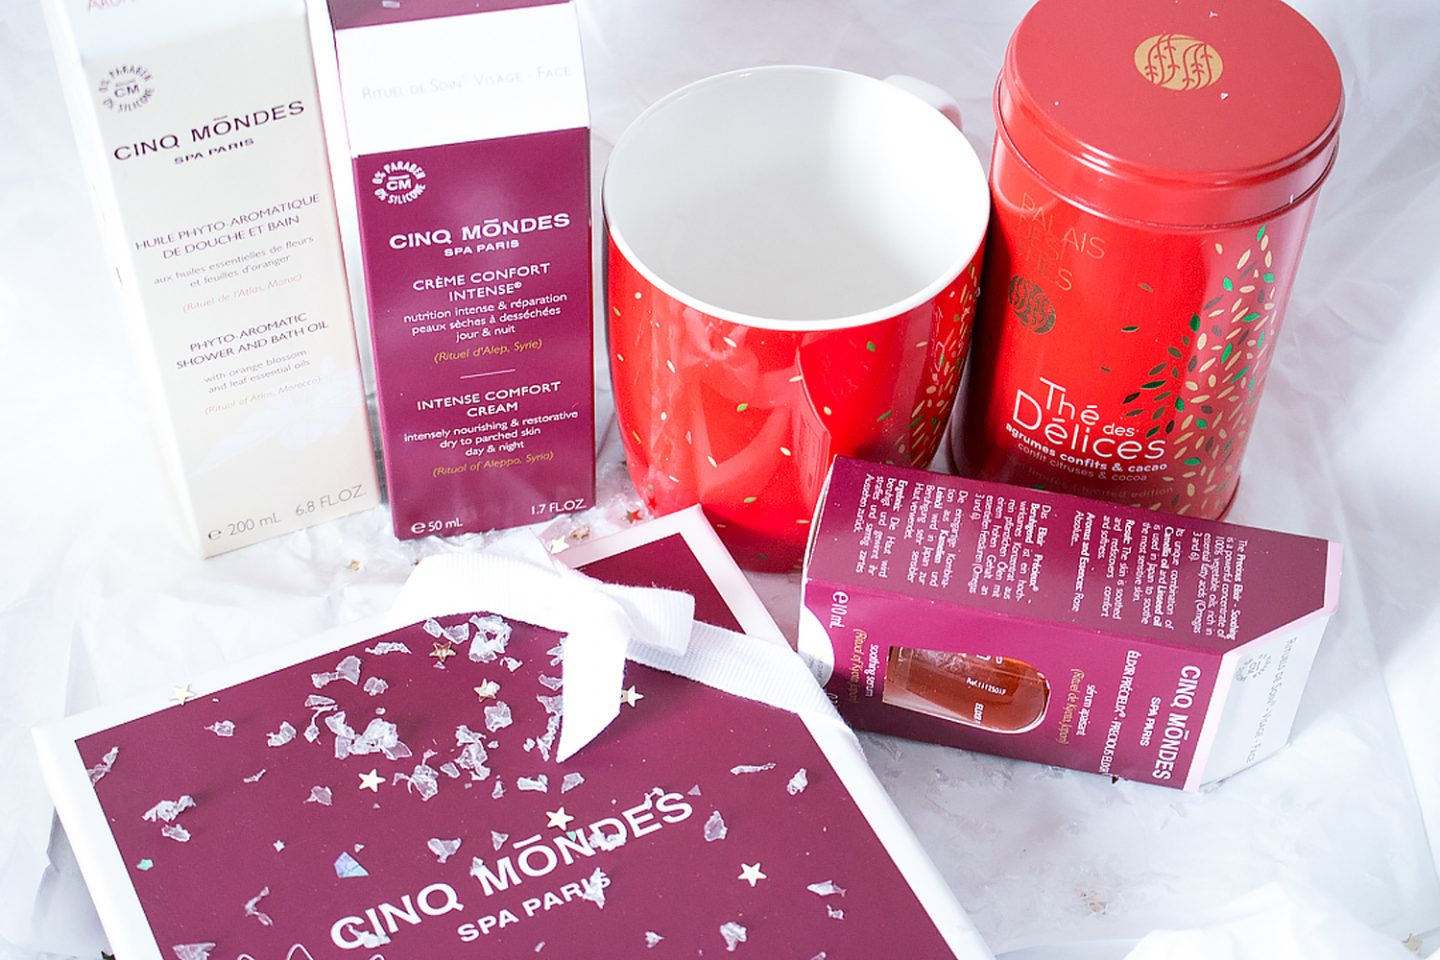 Le coffret surprise Cinq Mondes